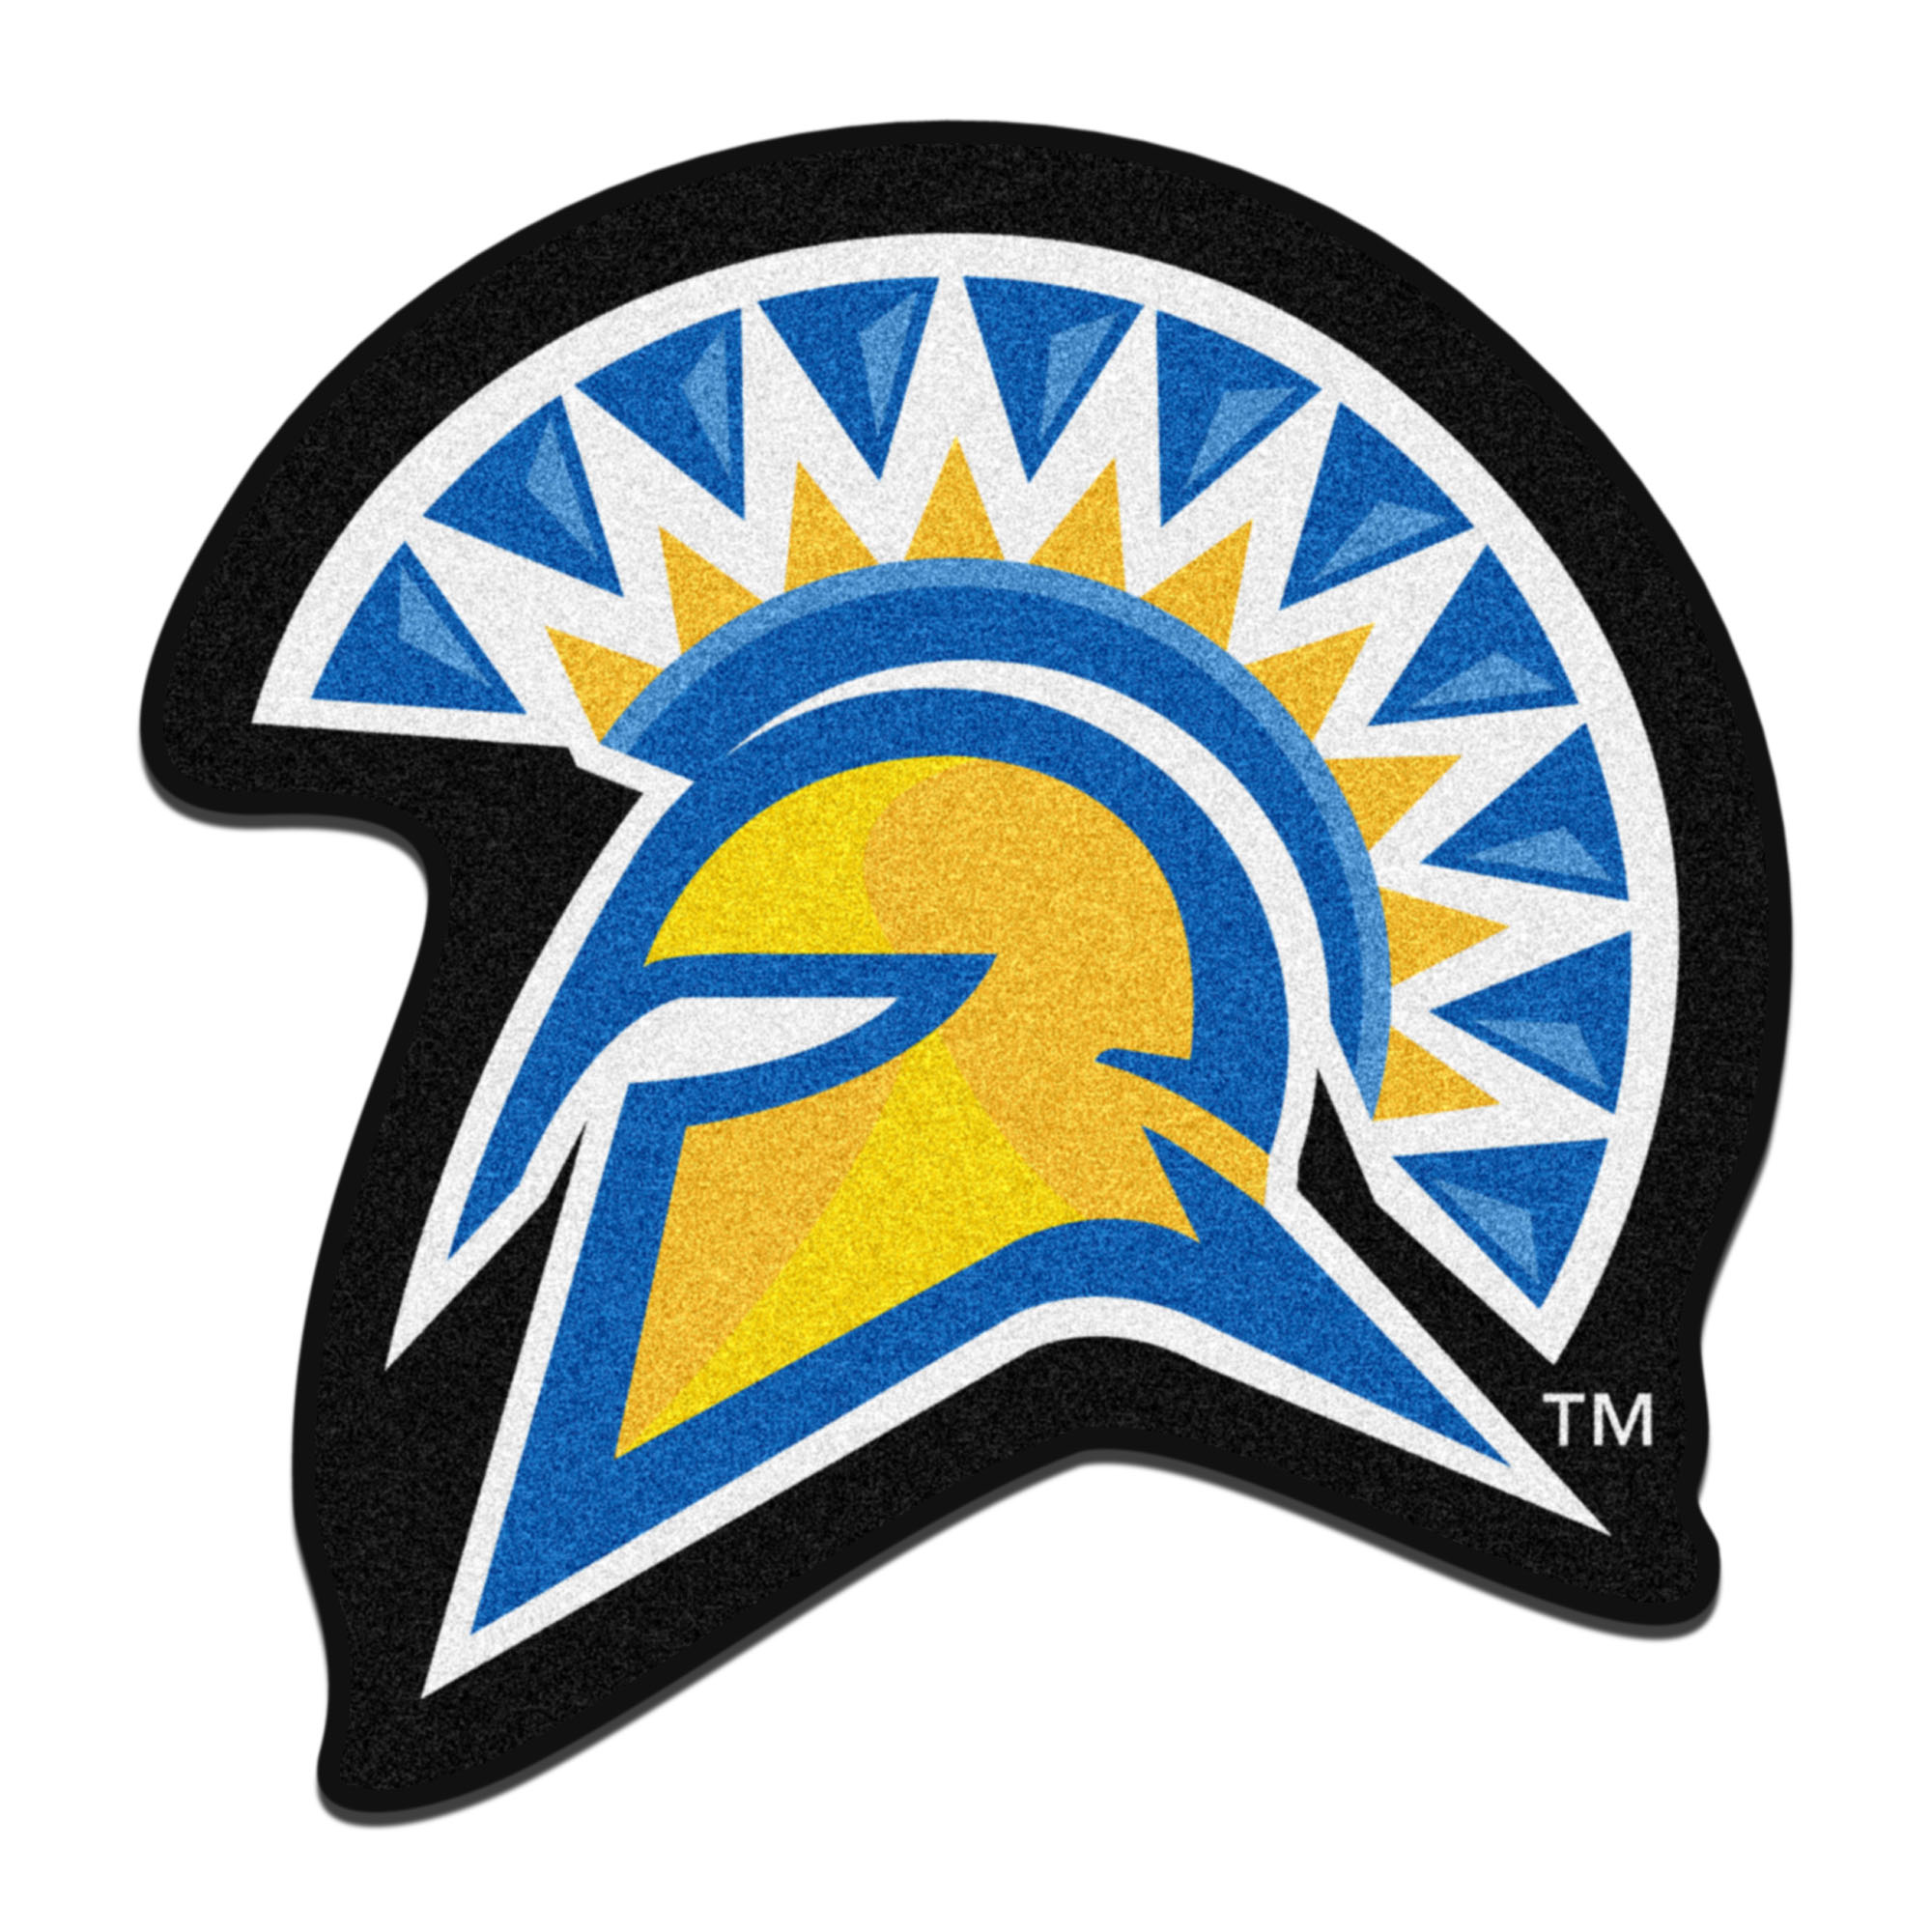 San Jose State University Spartans Mascot Area Rug Nylon